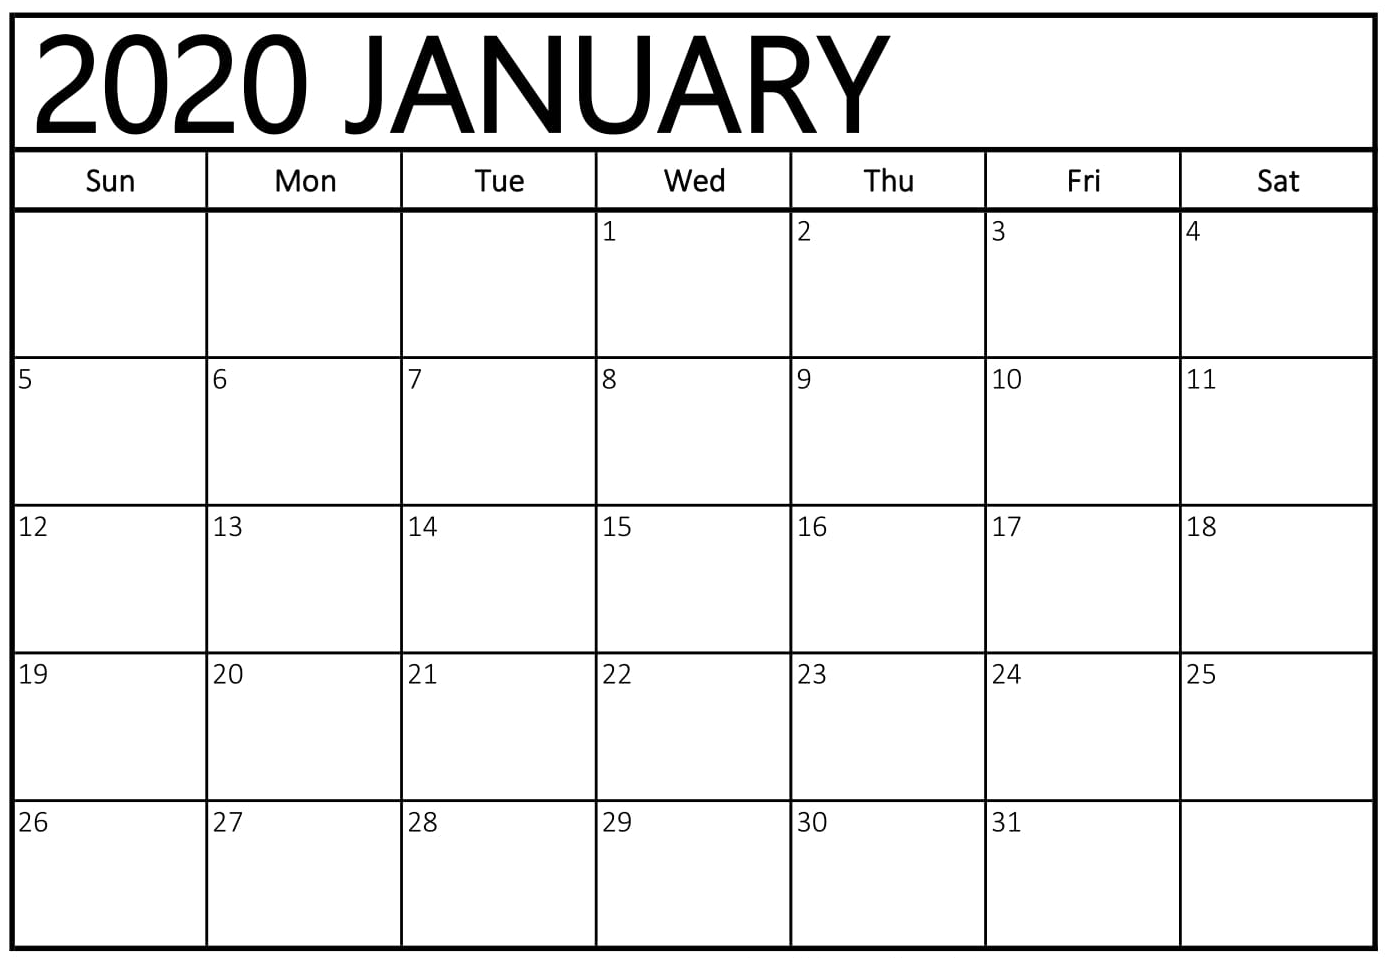 January 2020 Calendar Printable A4 Size Paper